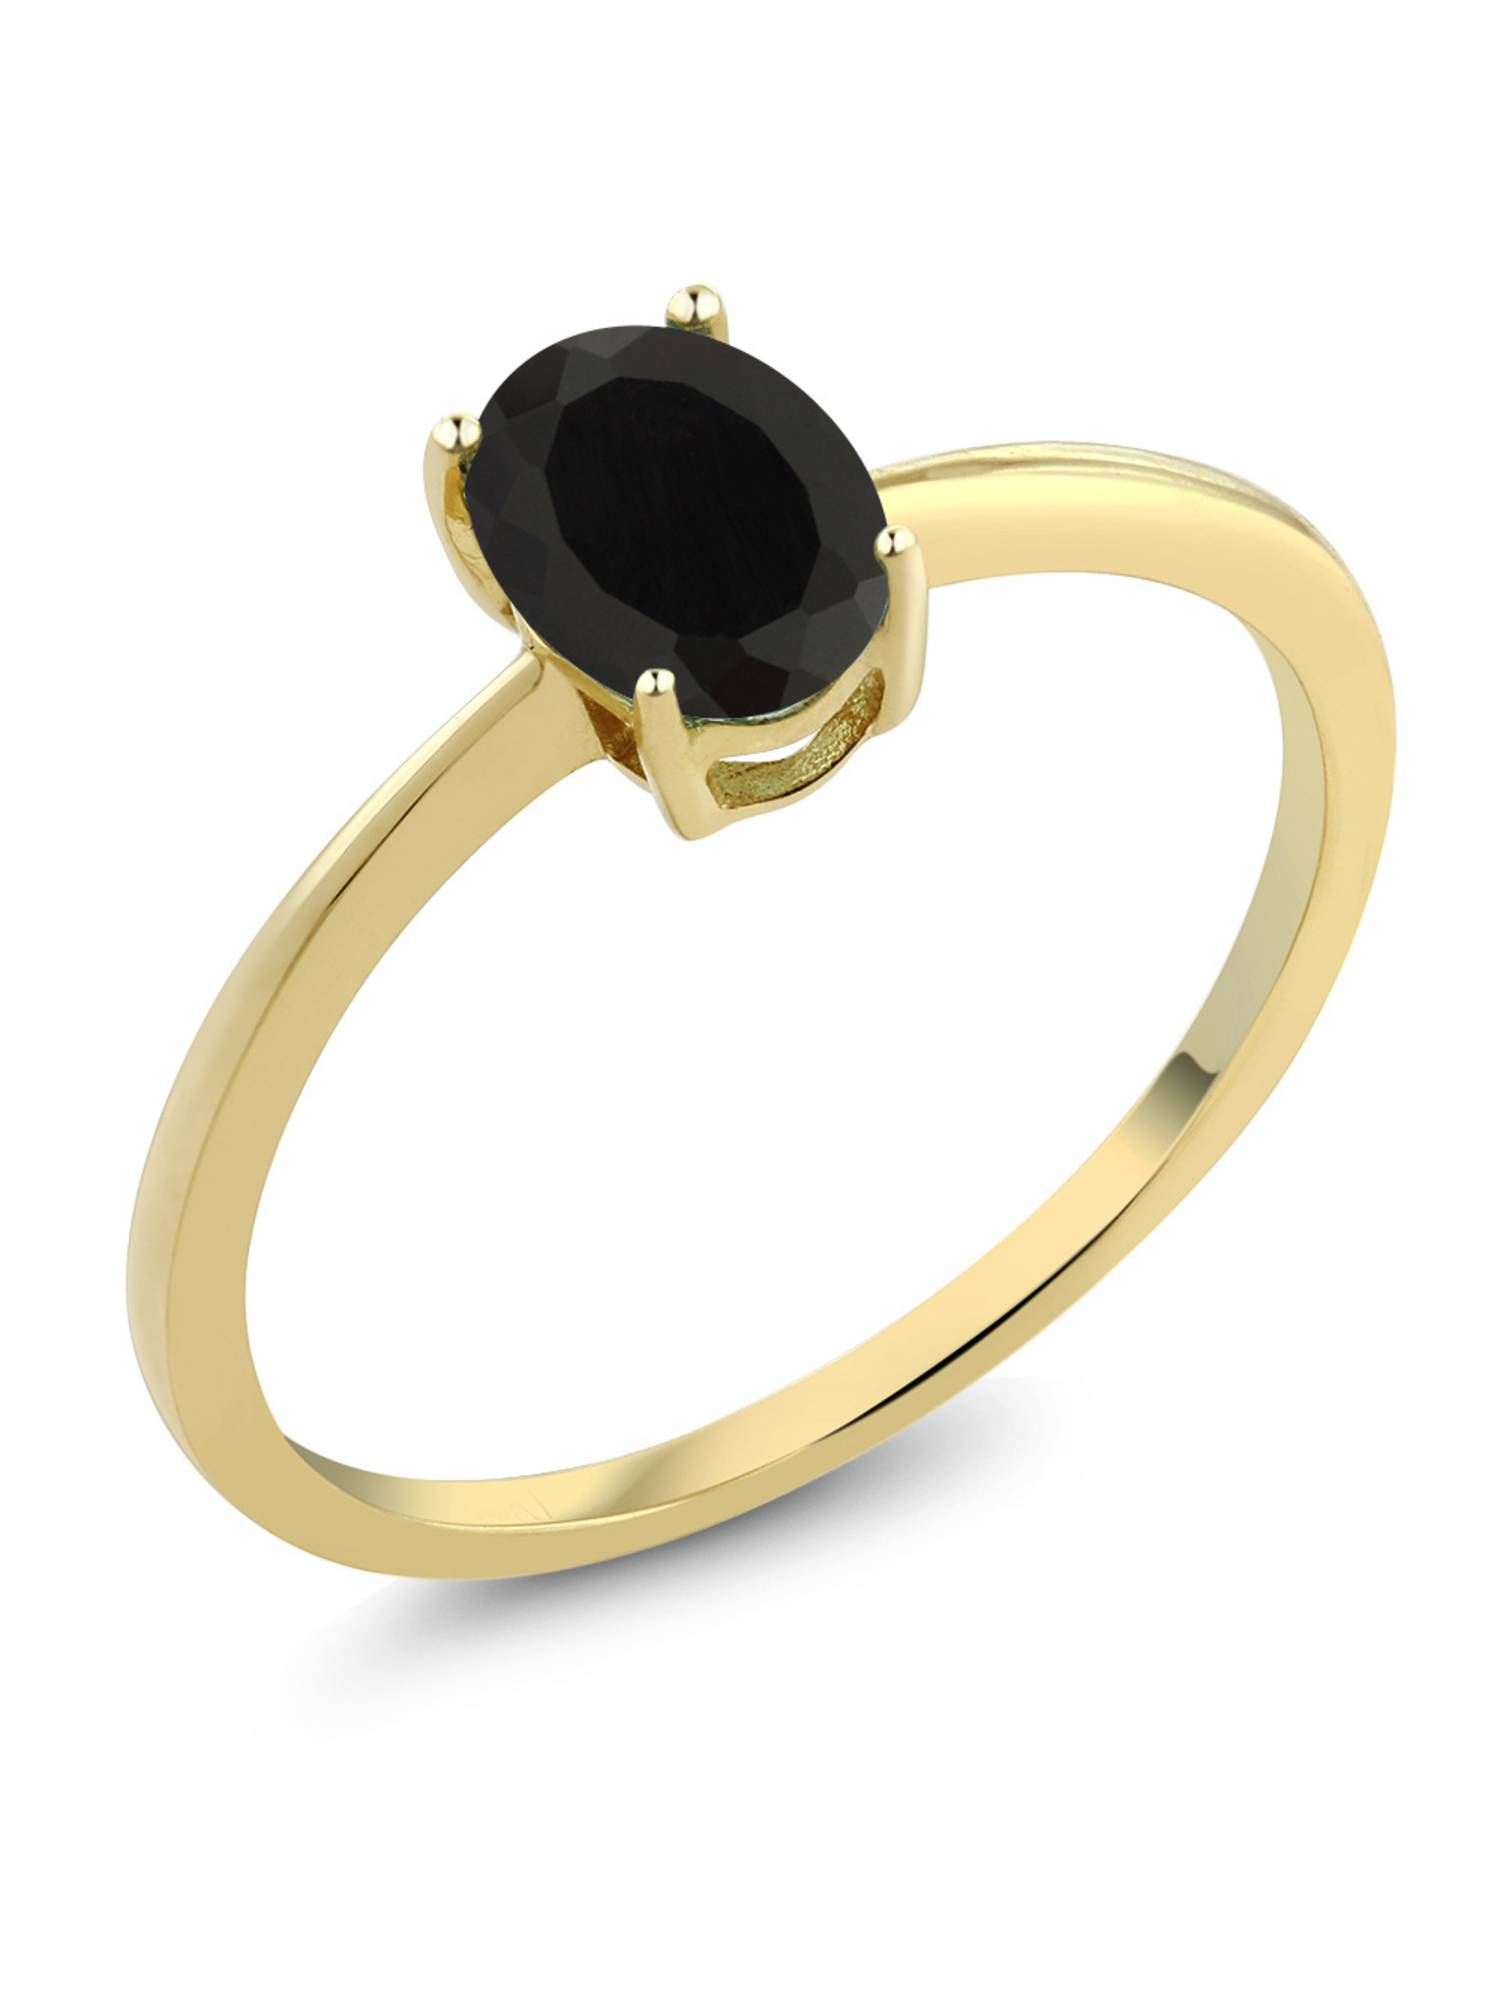 0.80 Ct Oval Black Onyx 10K Yellow Gold Solitaire Engagement Ring